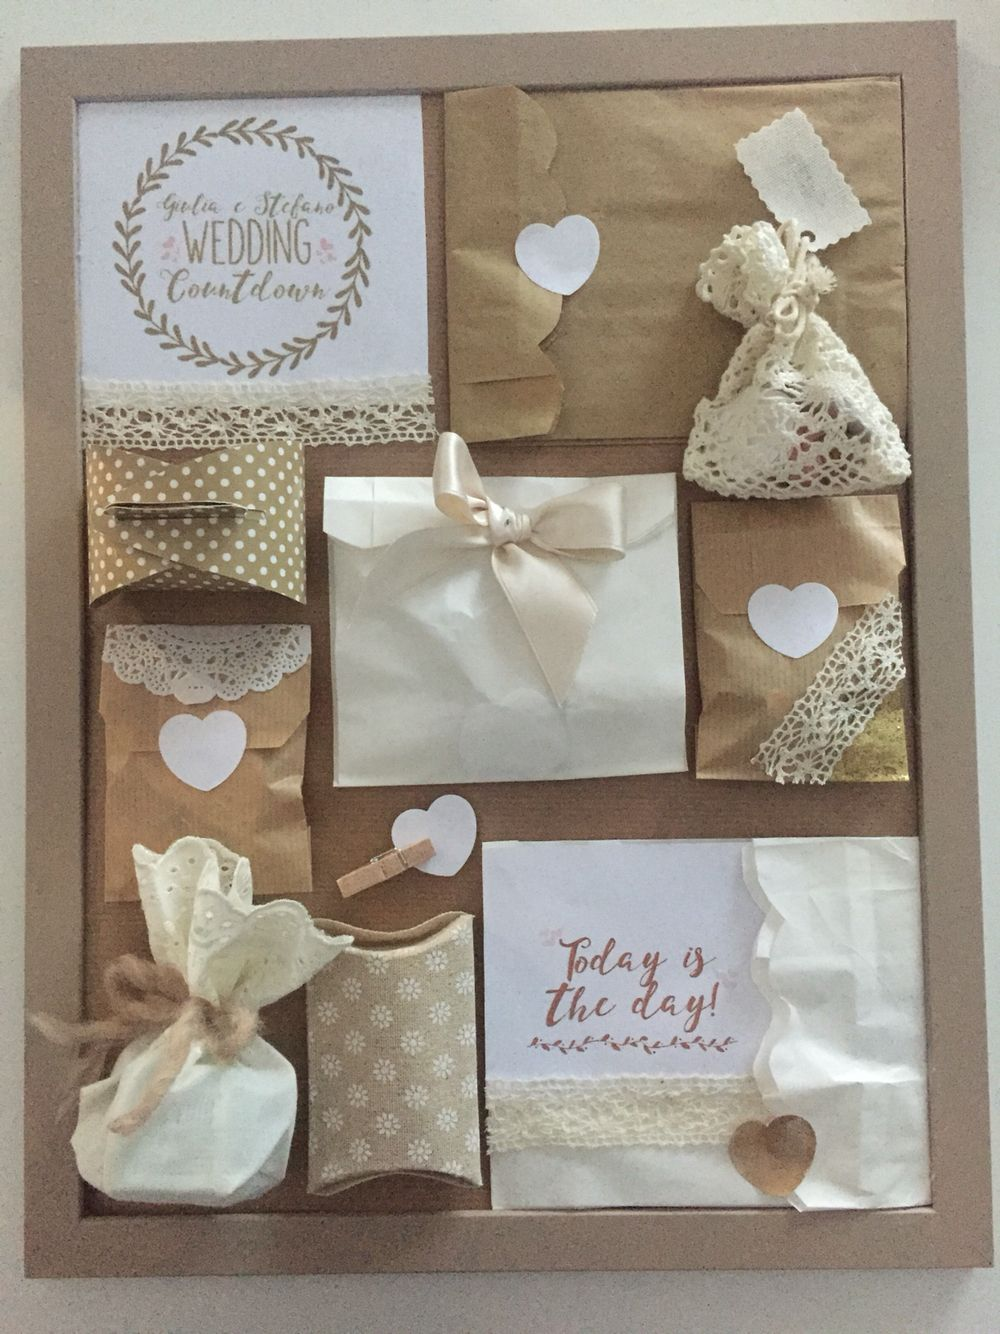 Advent Calendar Ideas Wedding : Giulia stefano wedding countdown advent calendar